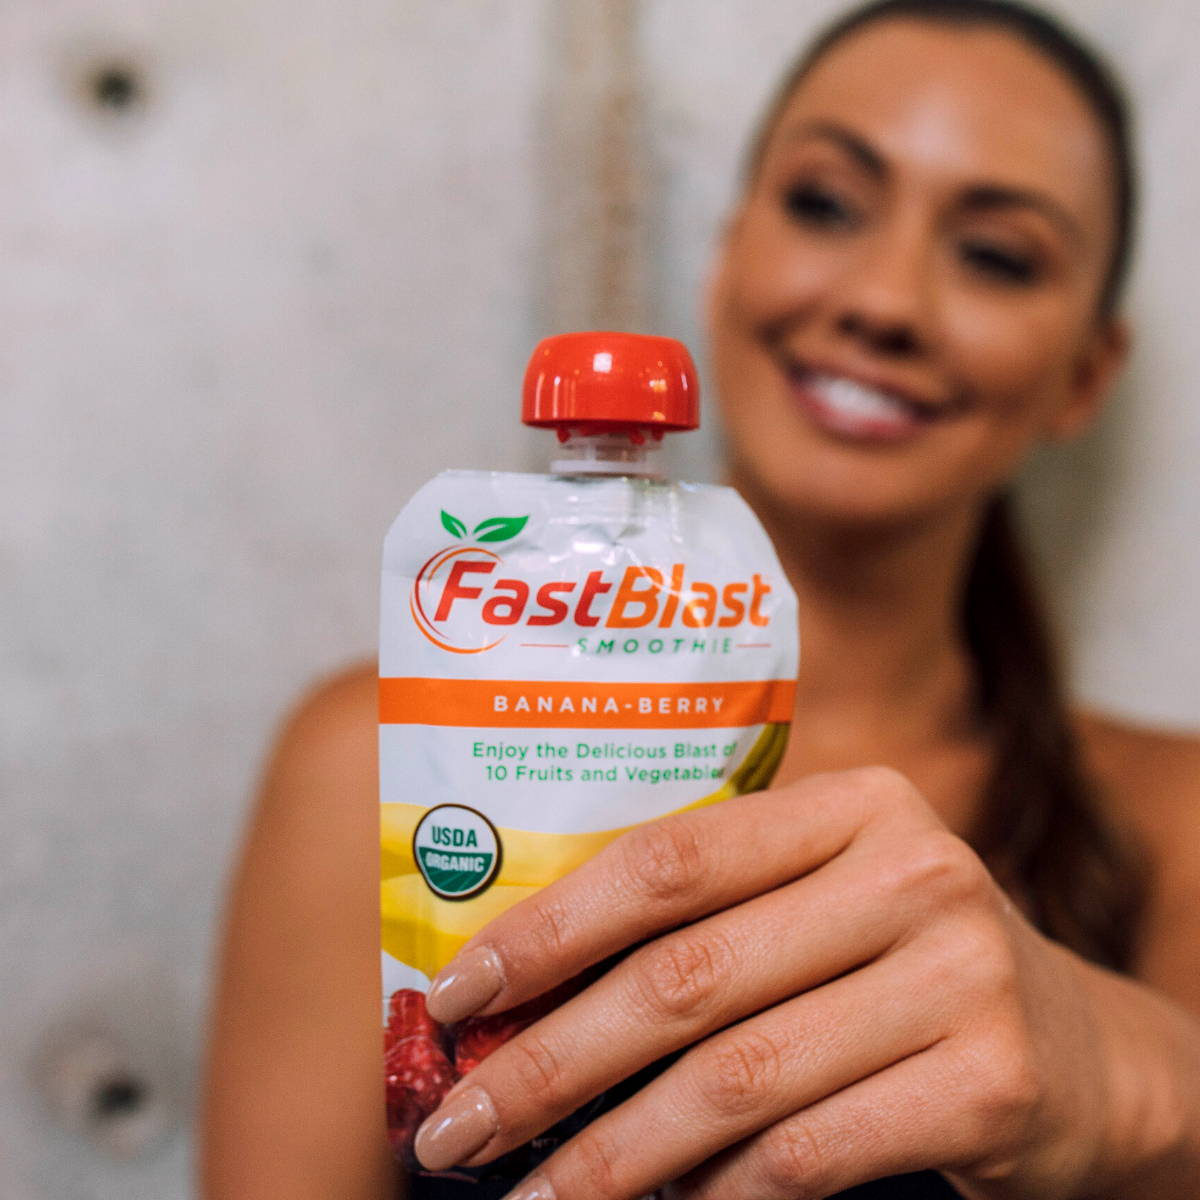 woman holding fastblast banana-berry smoothie pouch